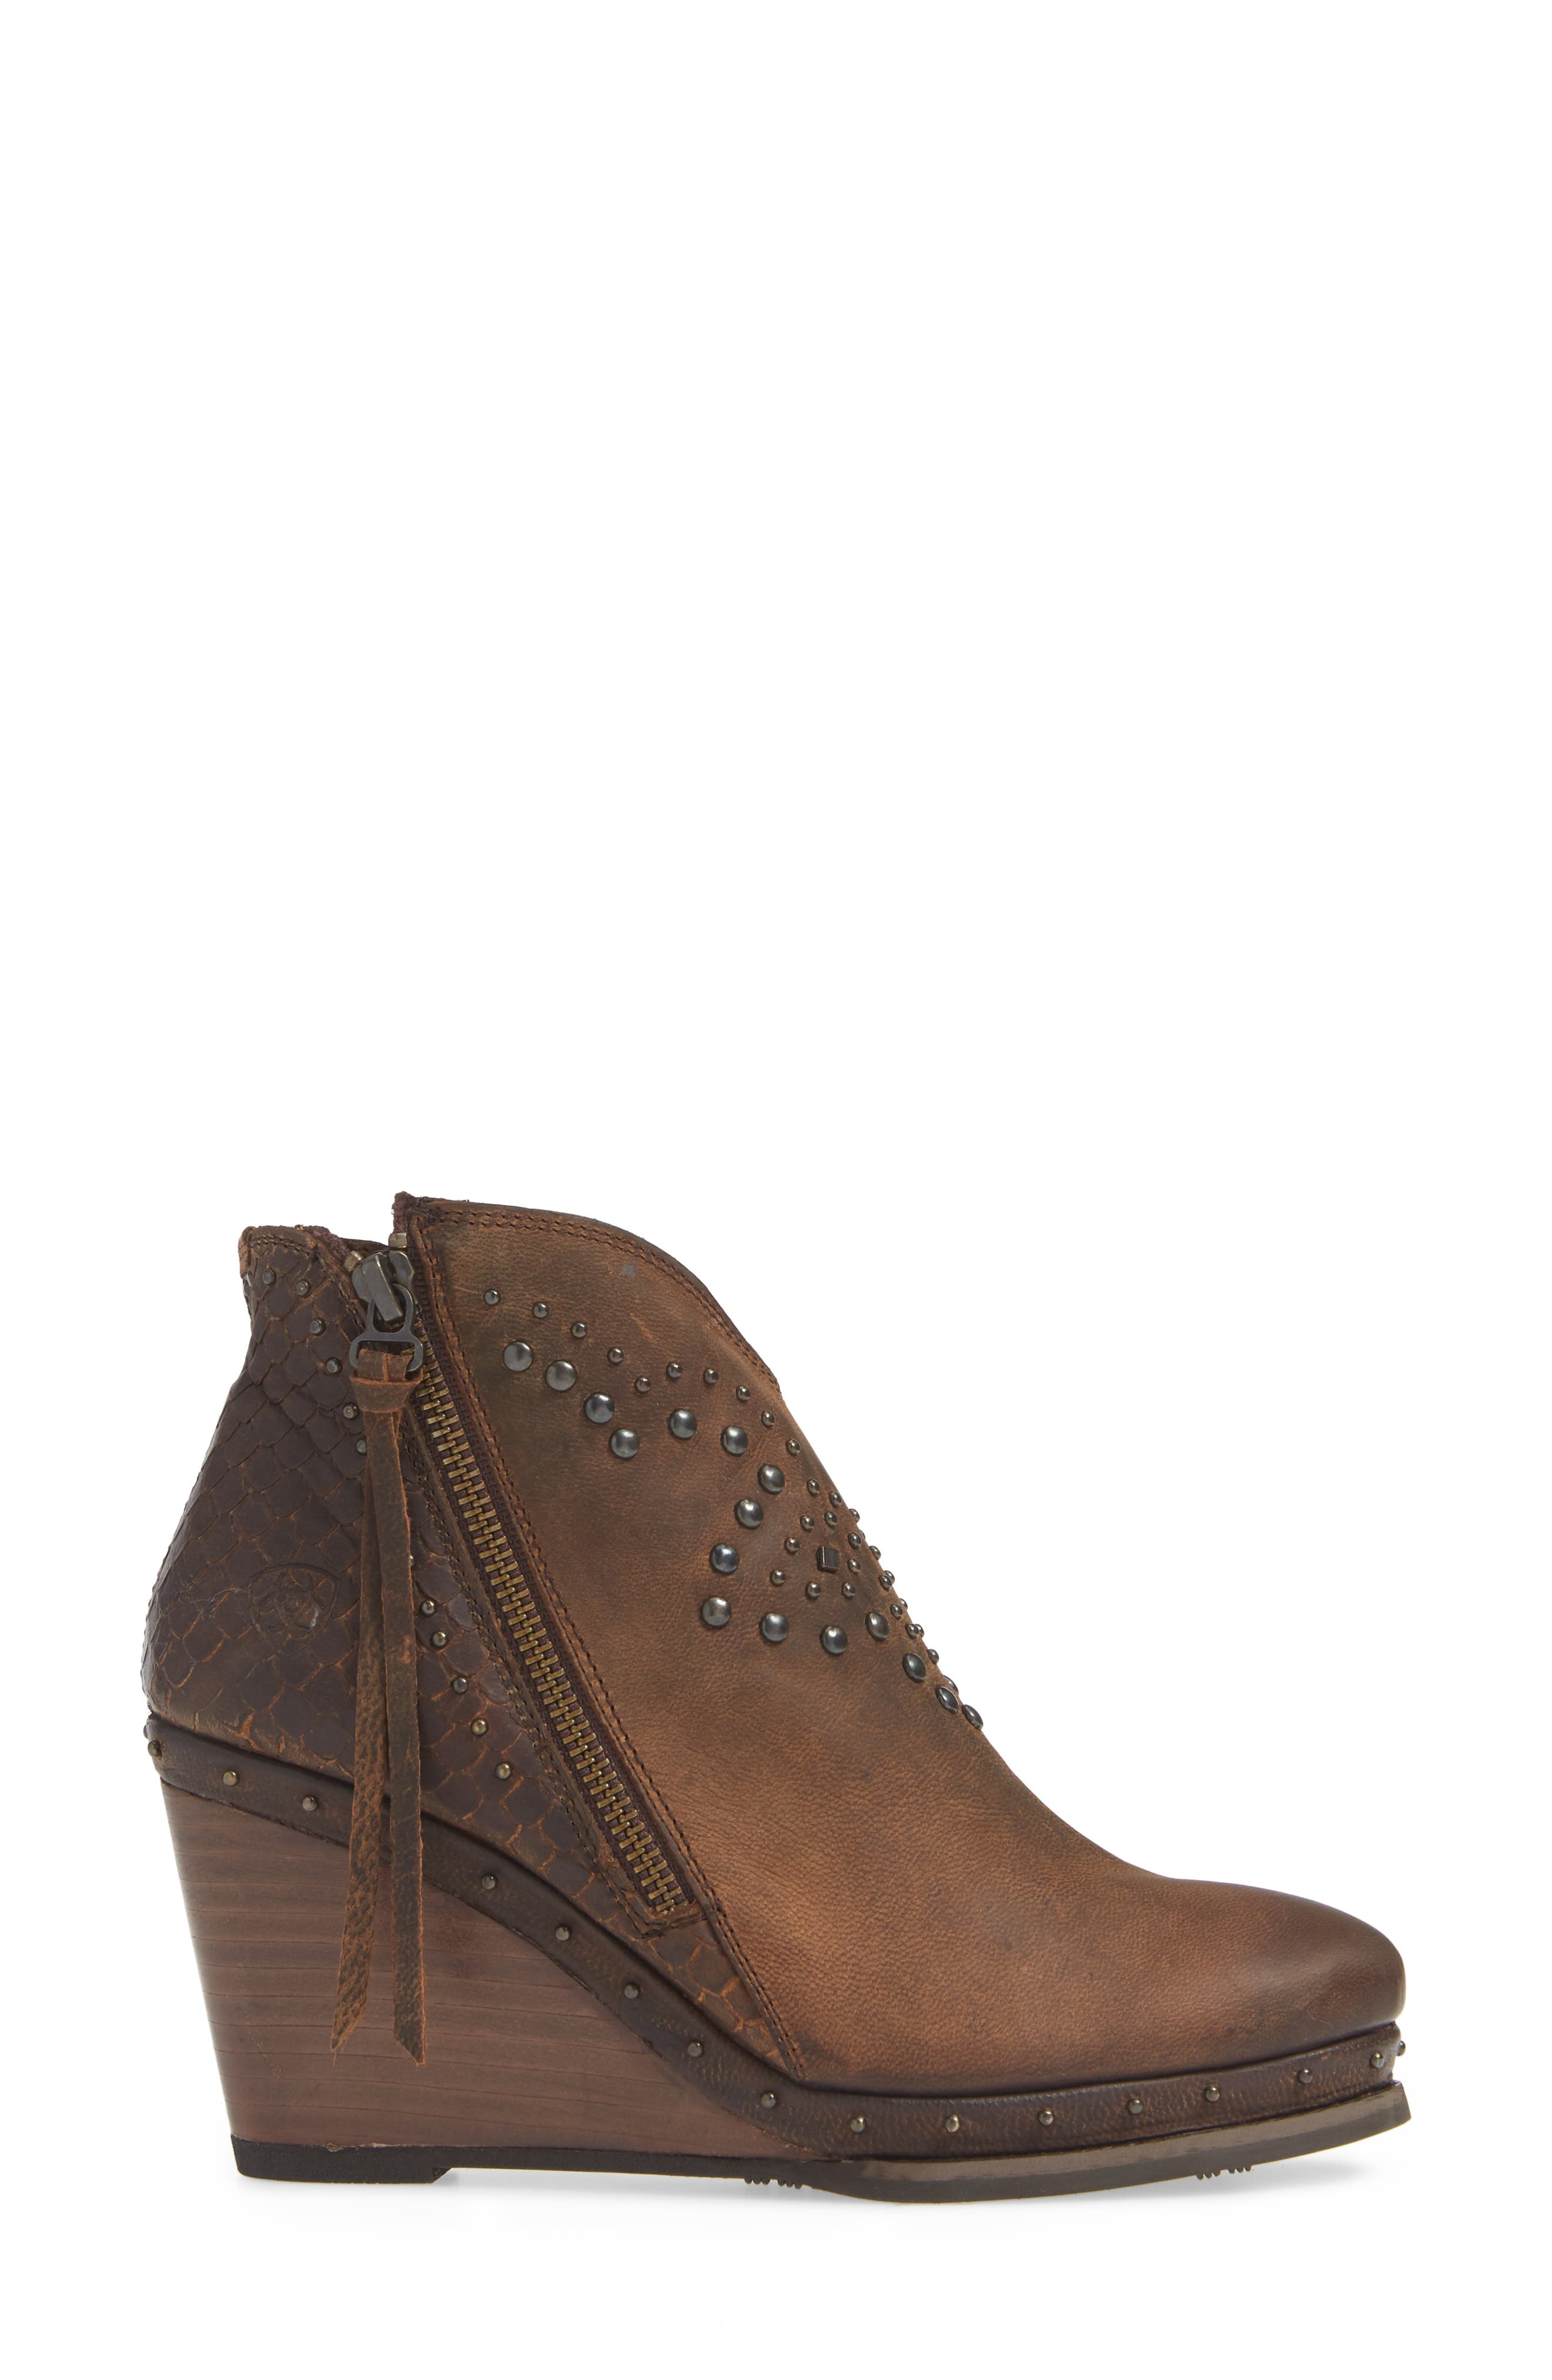 Stax Studded Wedge Bootie,                             Alternate thumbnail 3, color,                             RUSSET DIAMONDBACK TAN LEATHER